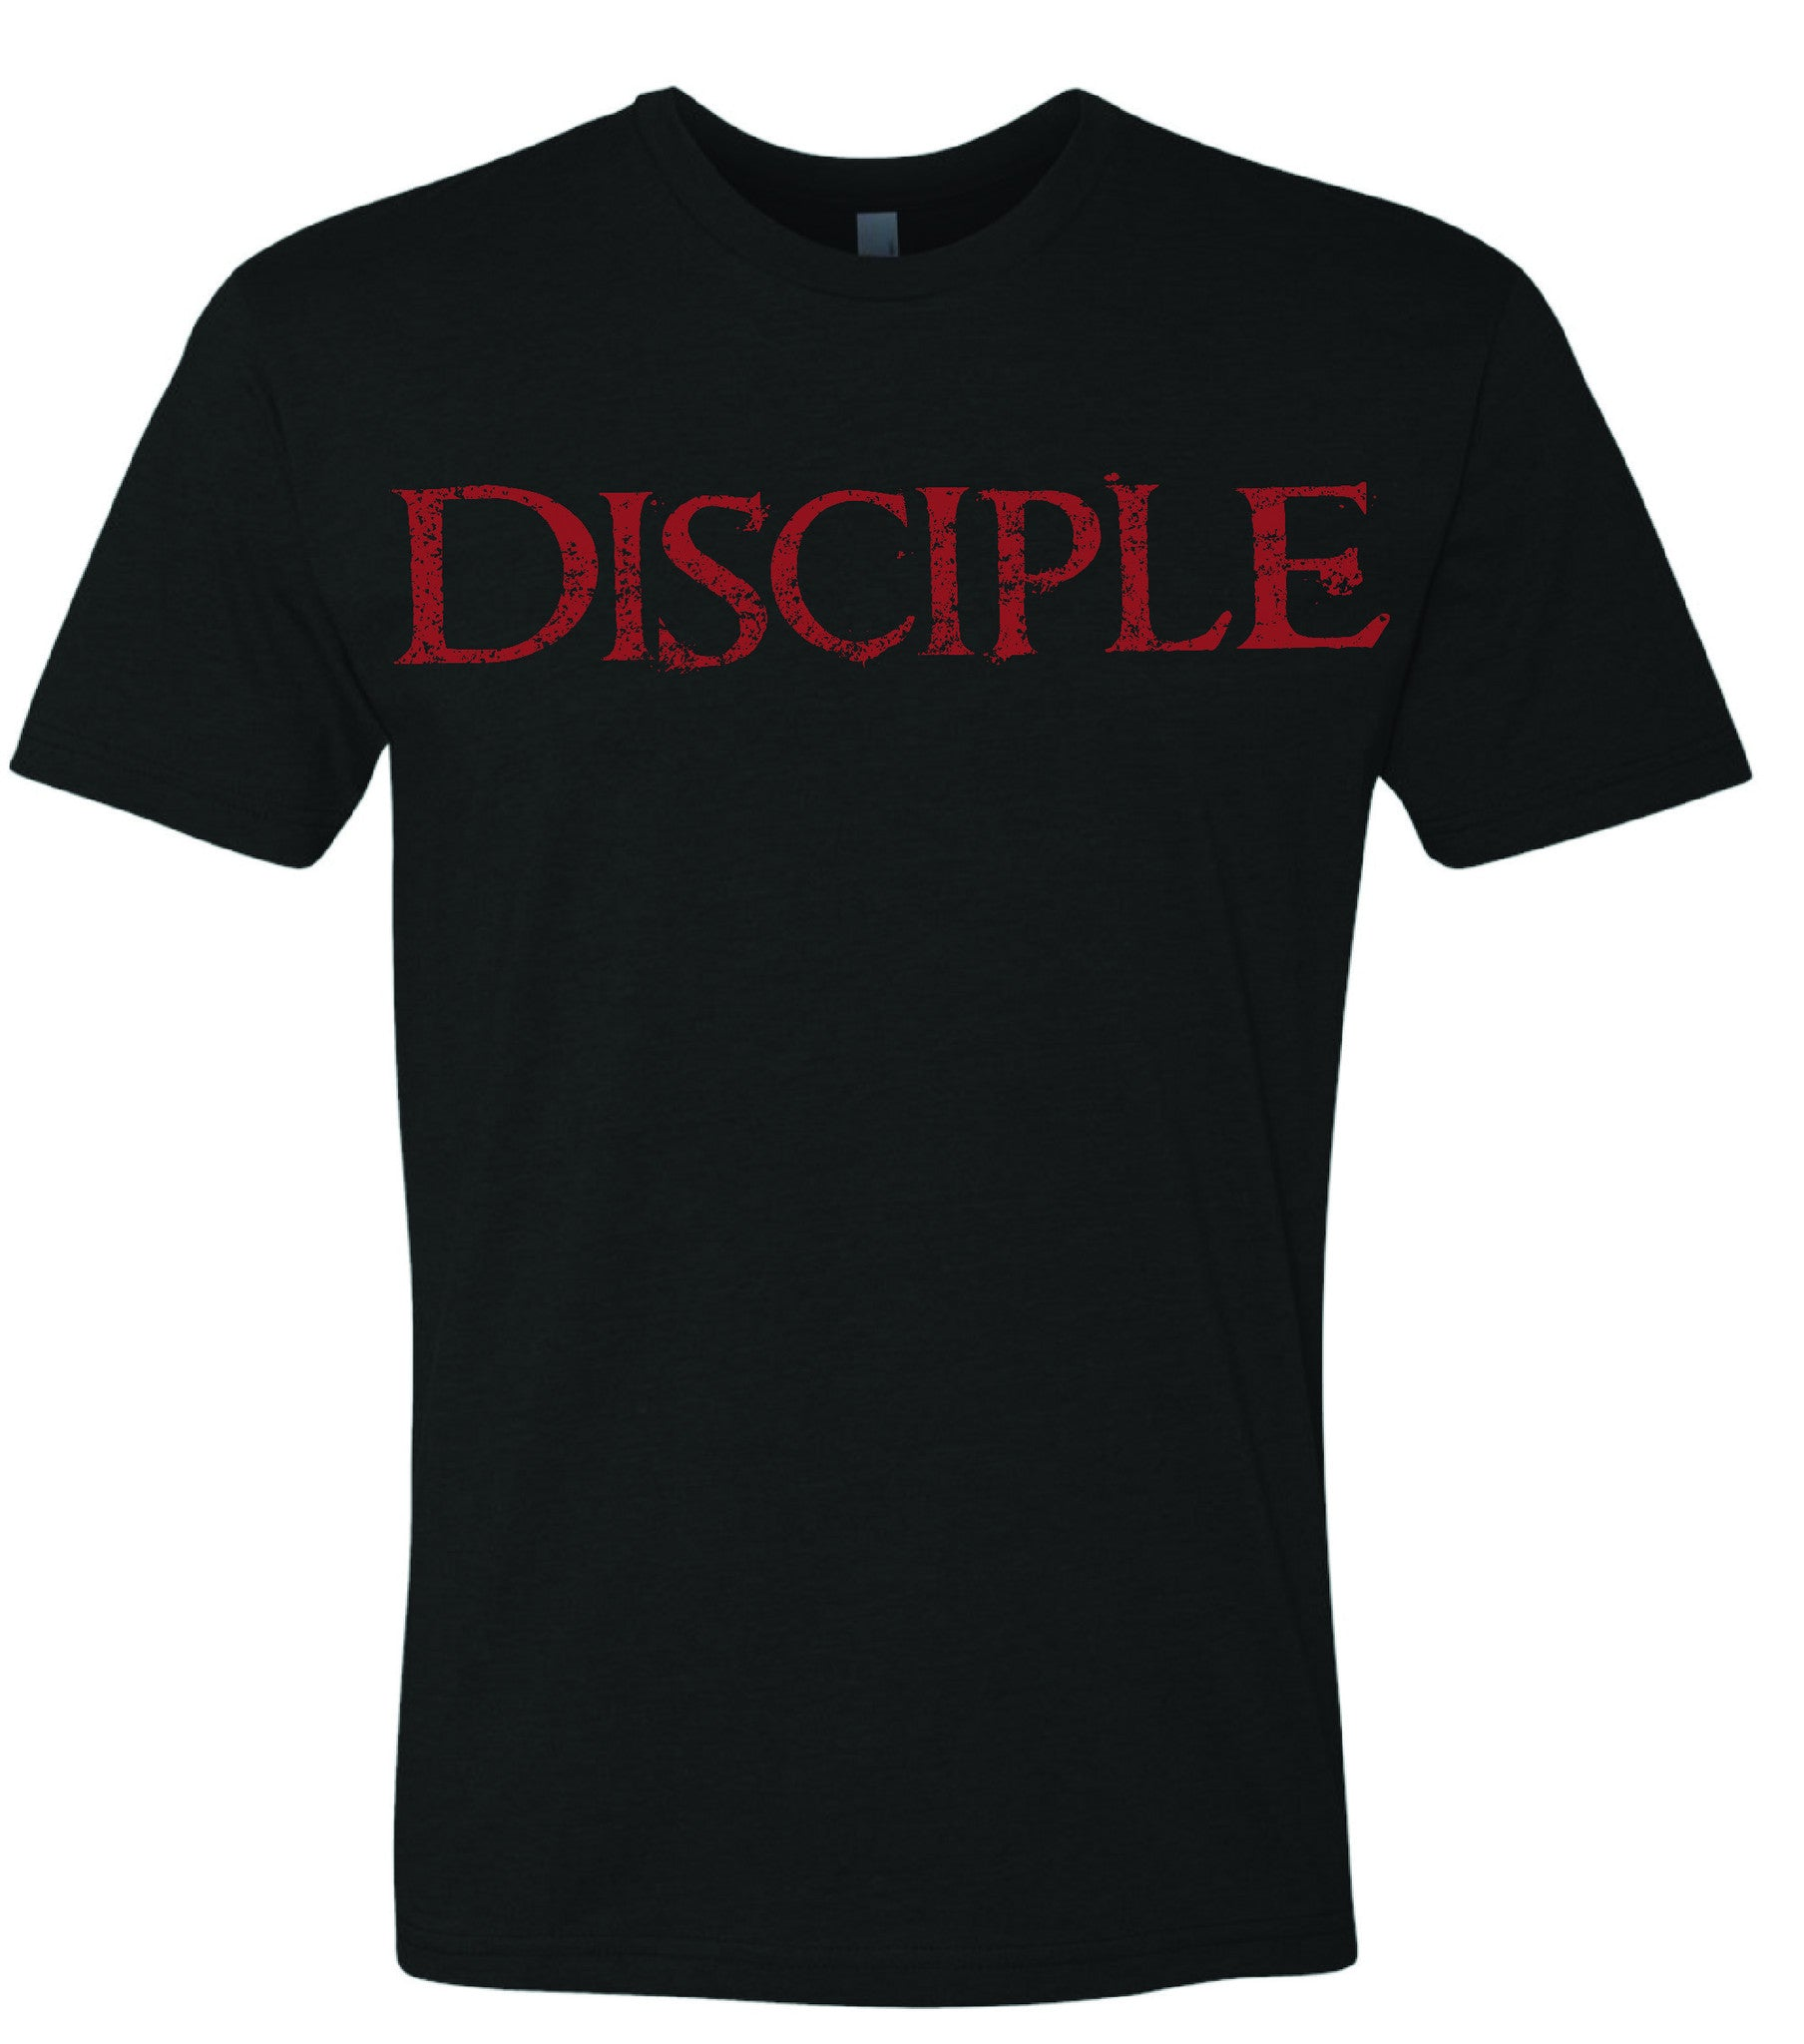 Disciple Name T